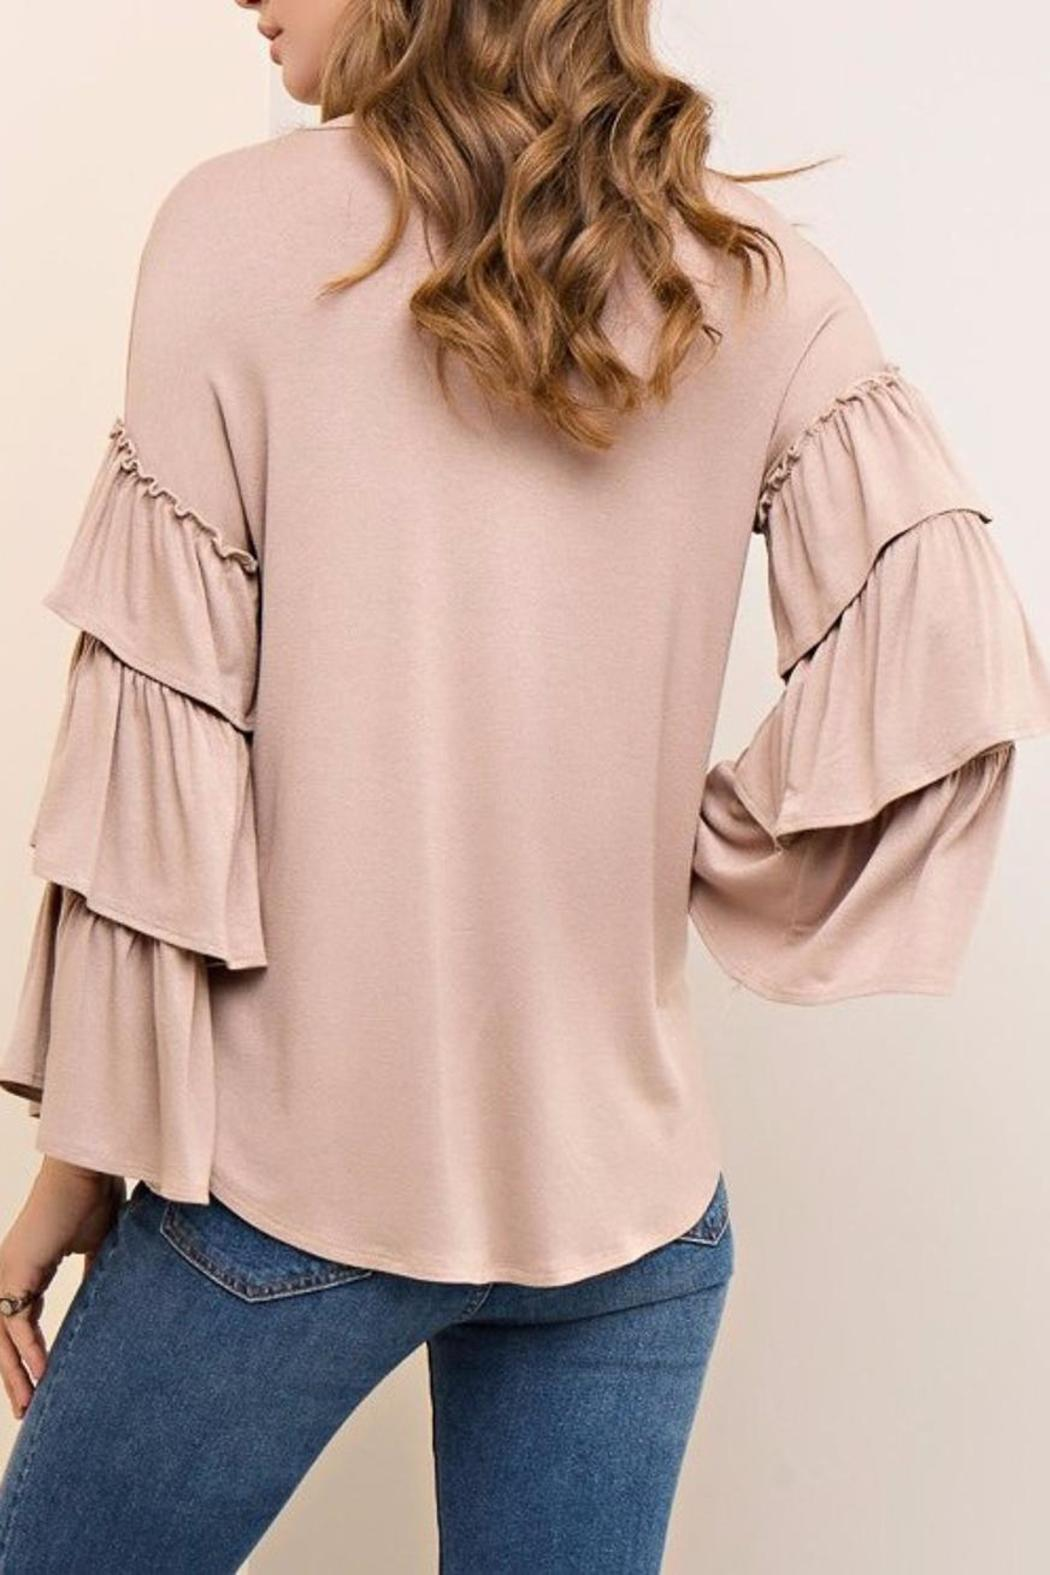 People Outfitter Mystic Ruffle Sleeves - Side Cropped Image